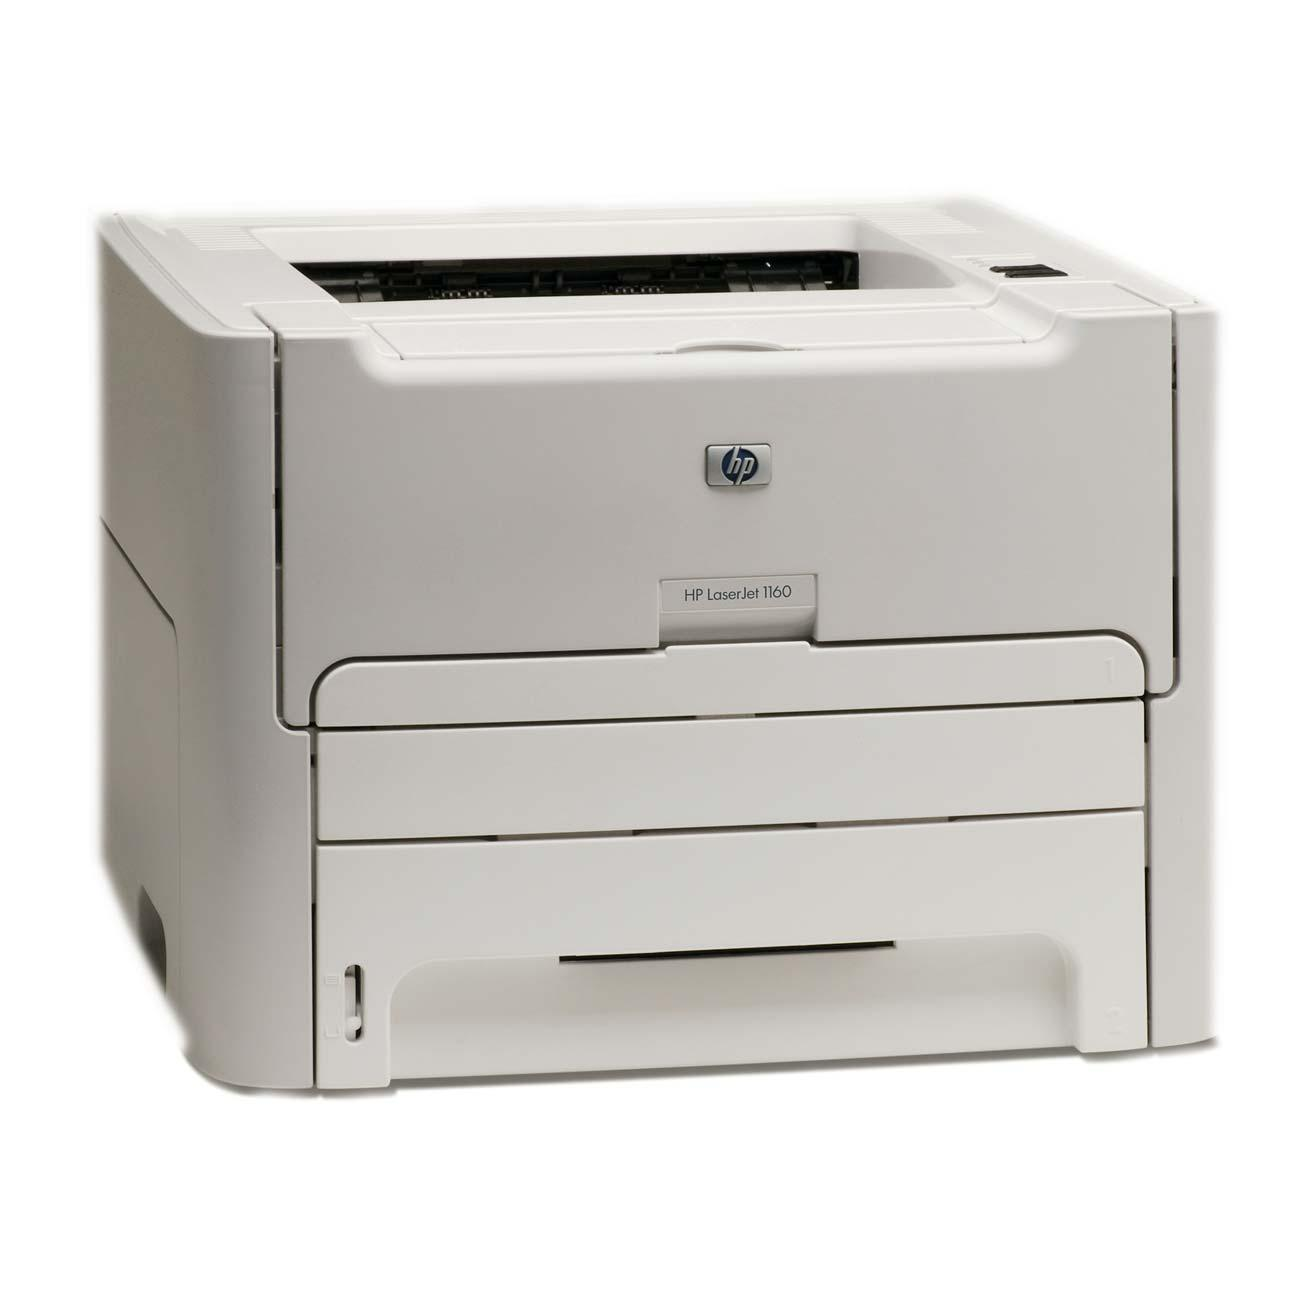 HP LaserJet 1160 Laser Printer - Monochrome - 600 x 600 dpi Print - Plain Paper Print - Desktop - 20 ppm Mono Print - Letter, Legal, Executive, Index Card, Monarch Envelope, Envelope No. 10, Custom Size - 250 sheets Standard Input Capacity - 10000 Duty Cy 0